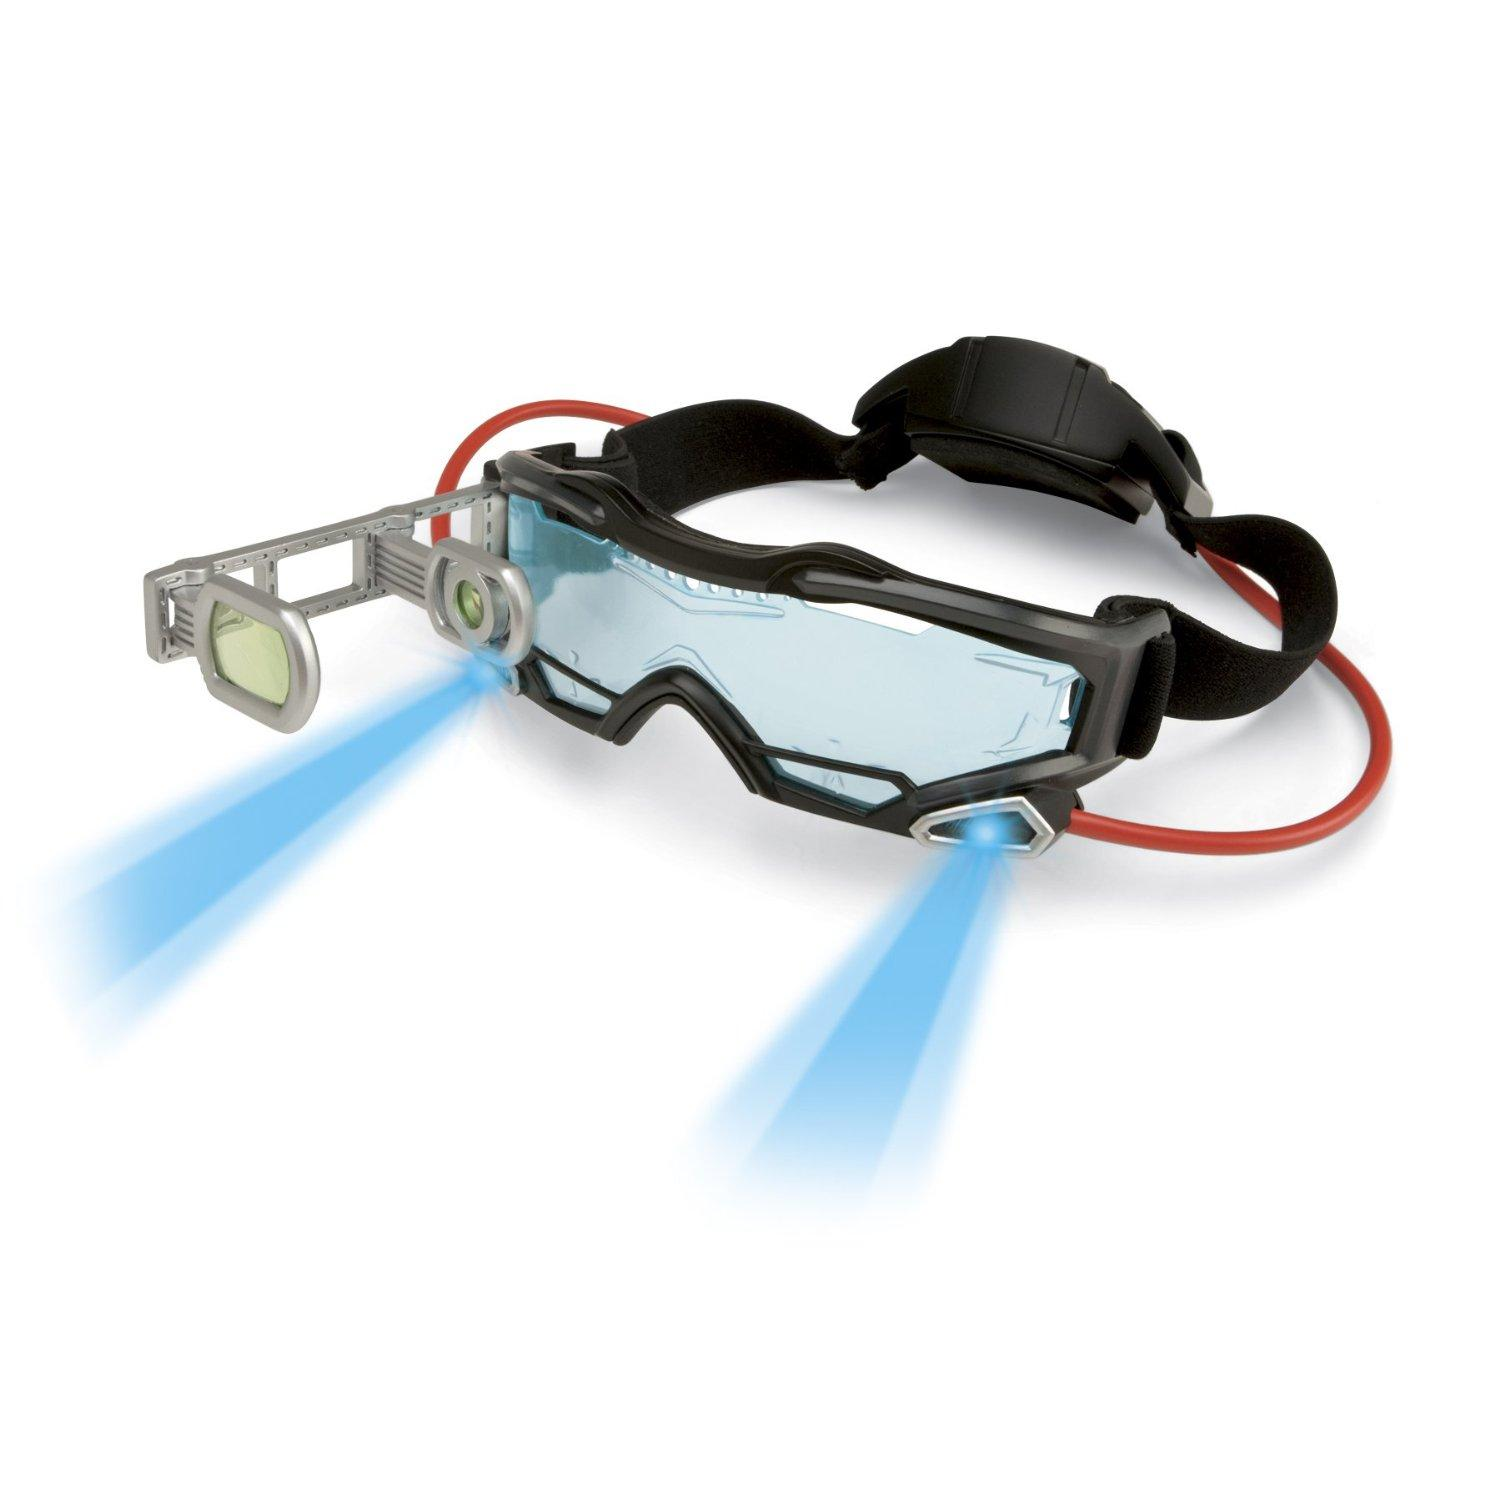 wild planet spy gear night goggles toy free shipping on orders over 45 13929139. Black Bedroom Furniture Sets. Home Design Ideas